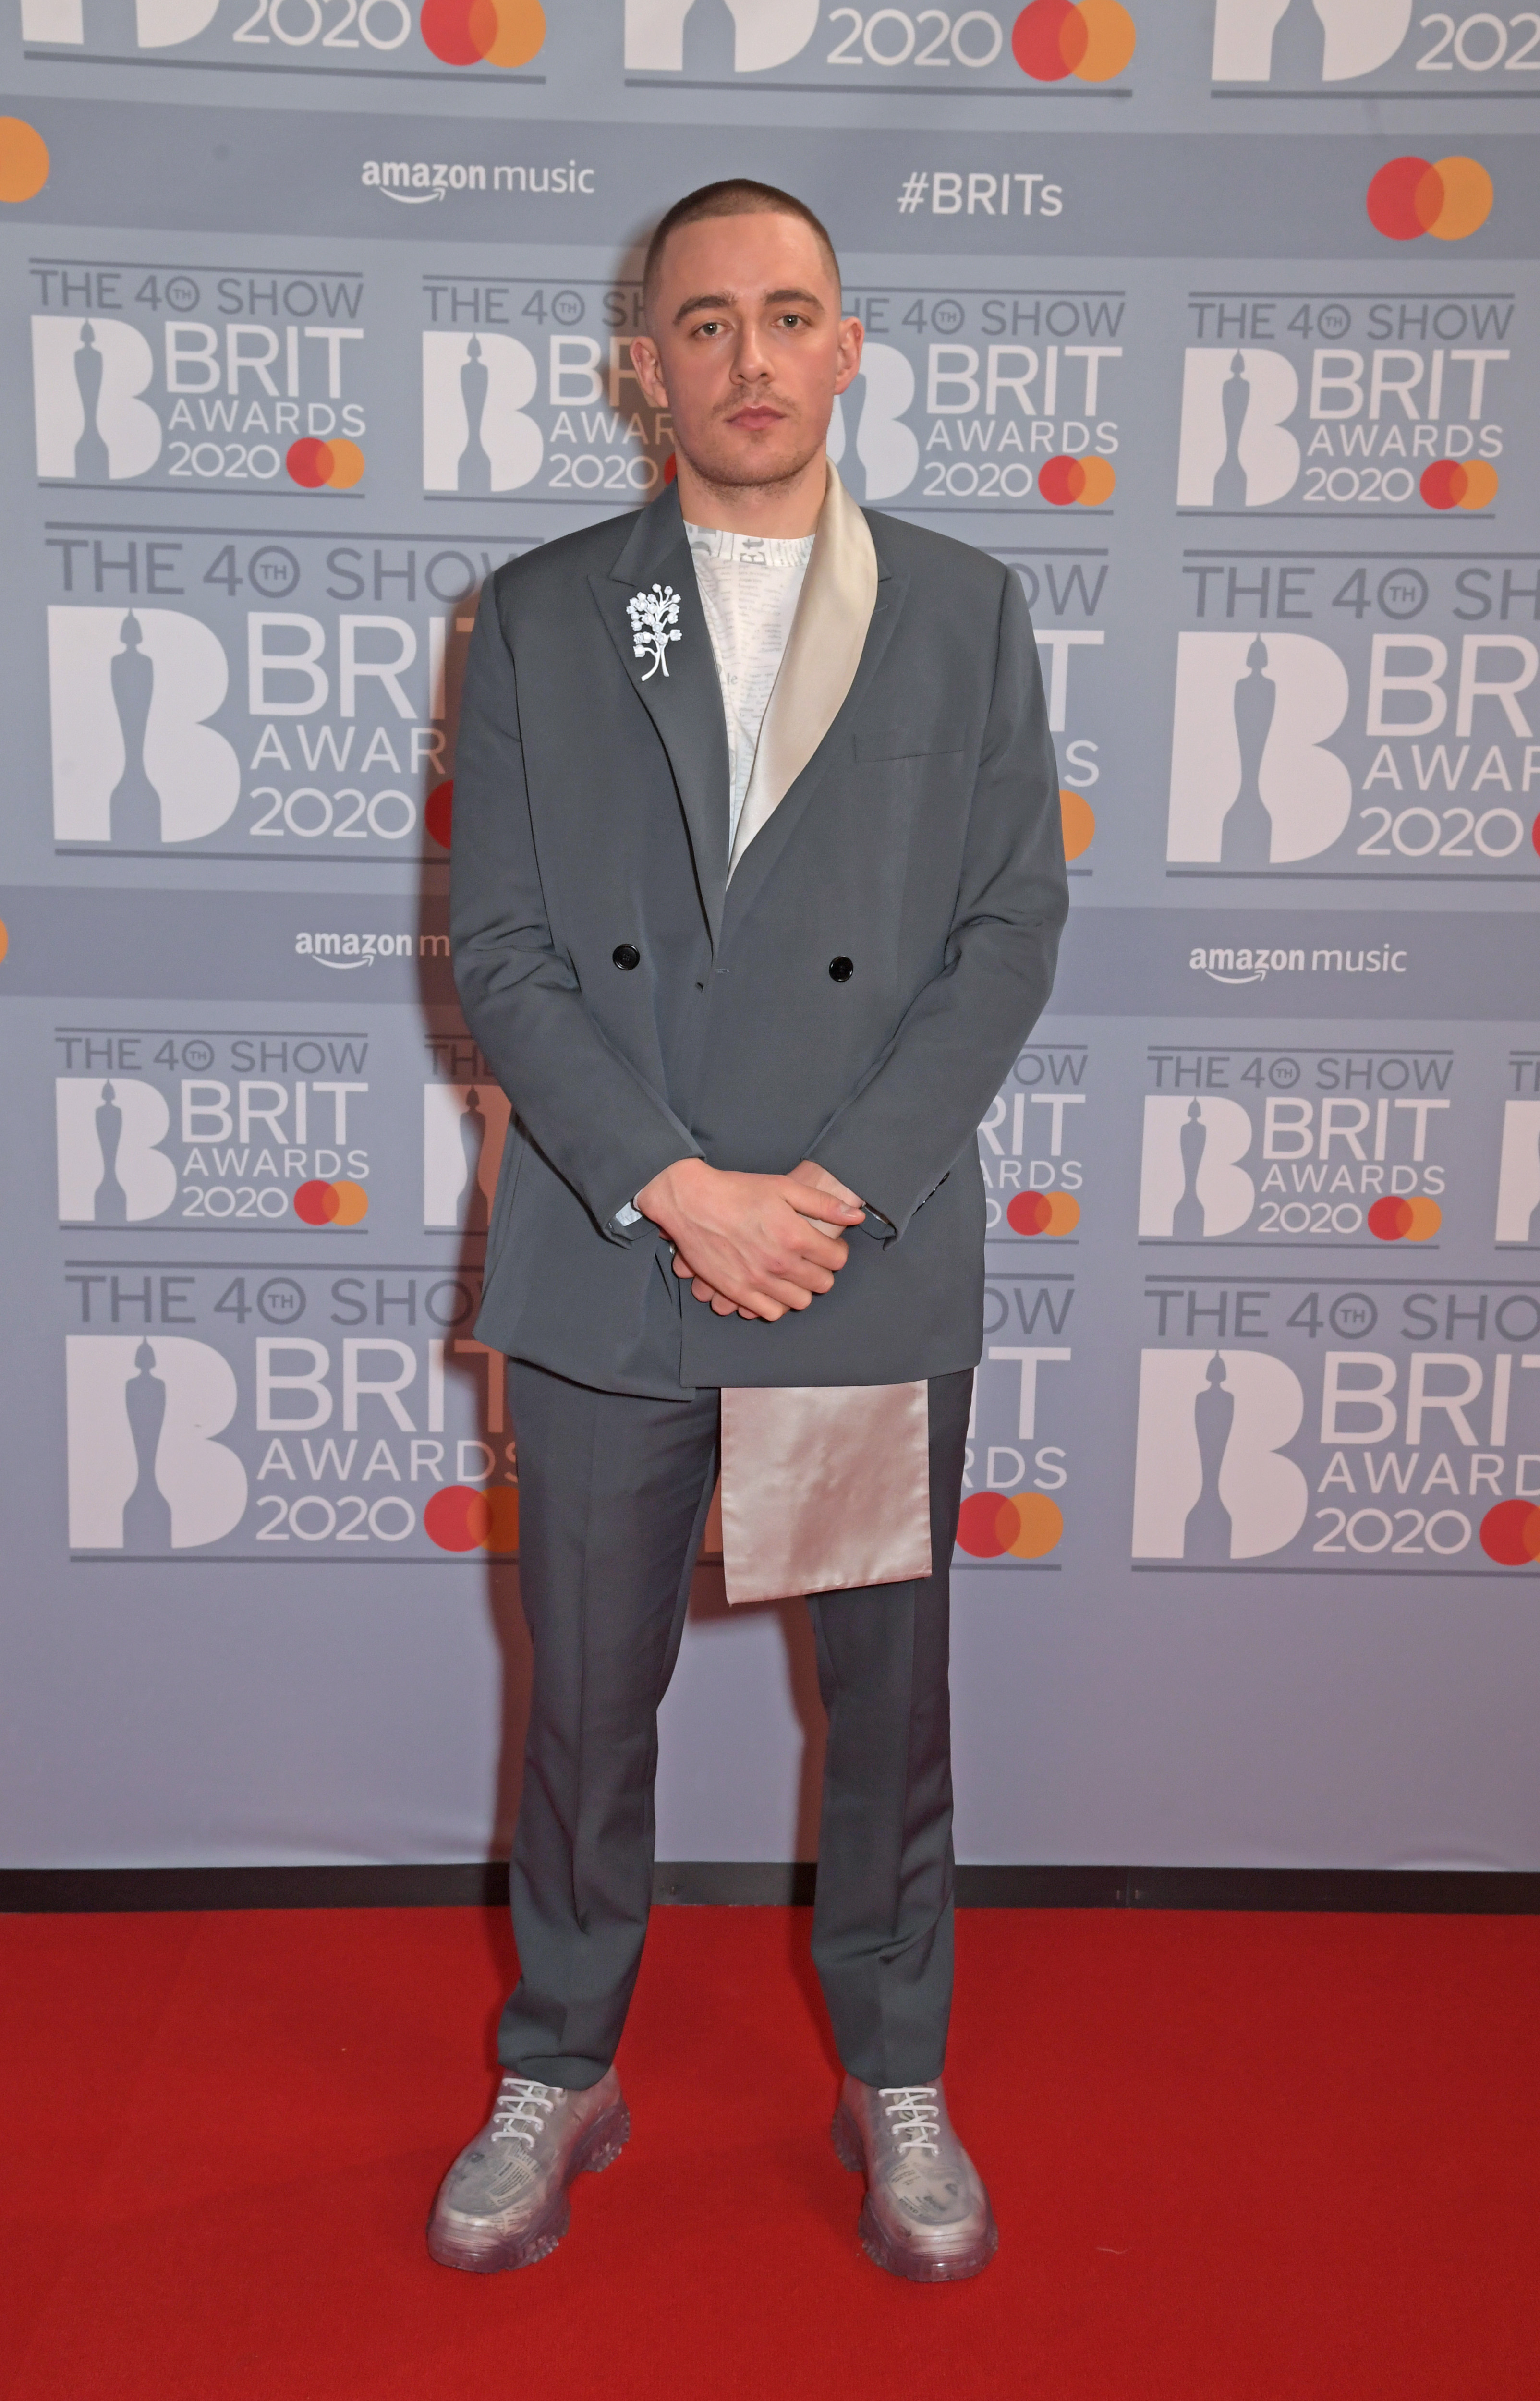 Dermot Kennedy attends The BRIT Awards 2020 at The O2 Arena on February 18, 2020 in London, England.  (Photo by David M. Benett/Dave Benett/Getty Images)